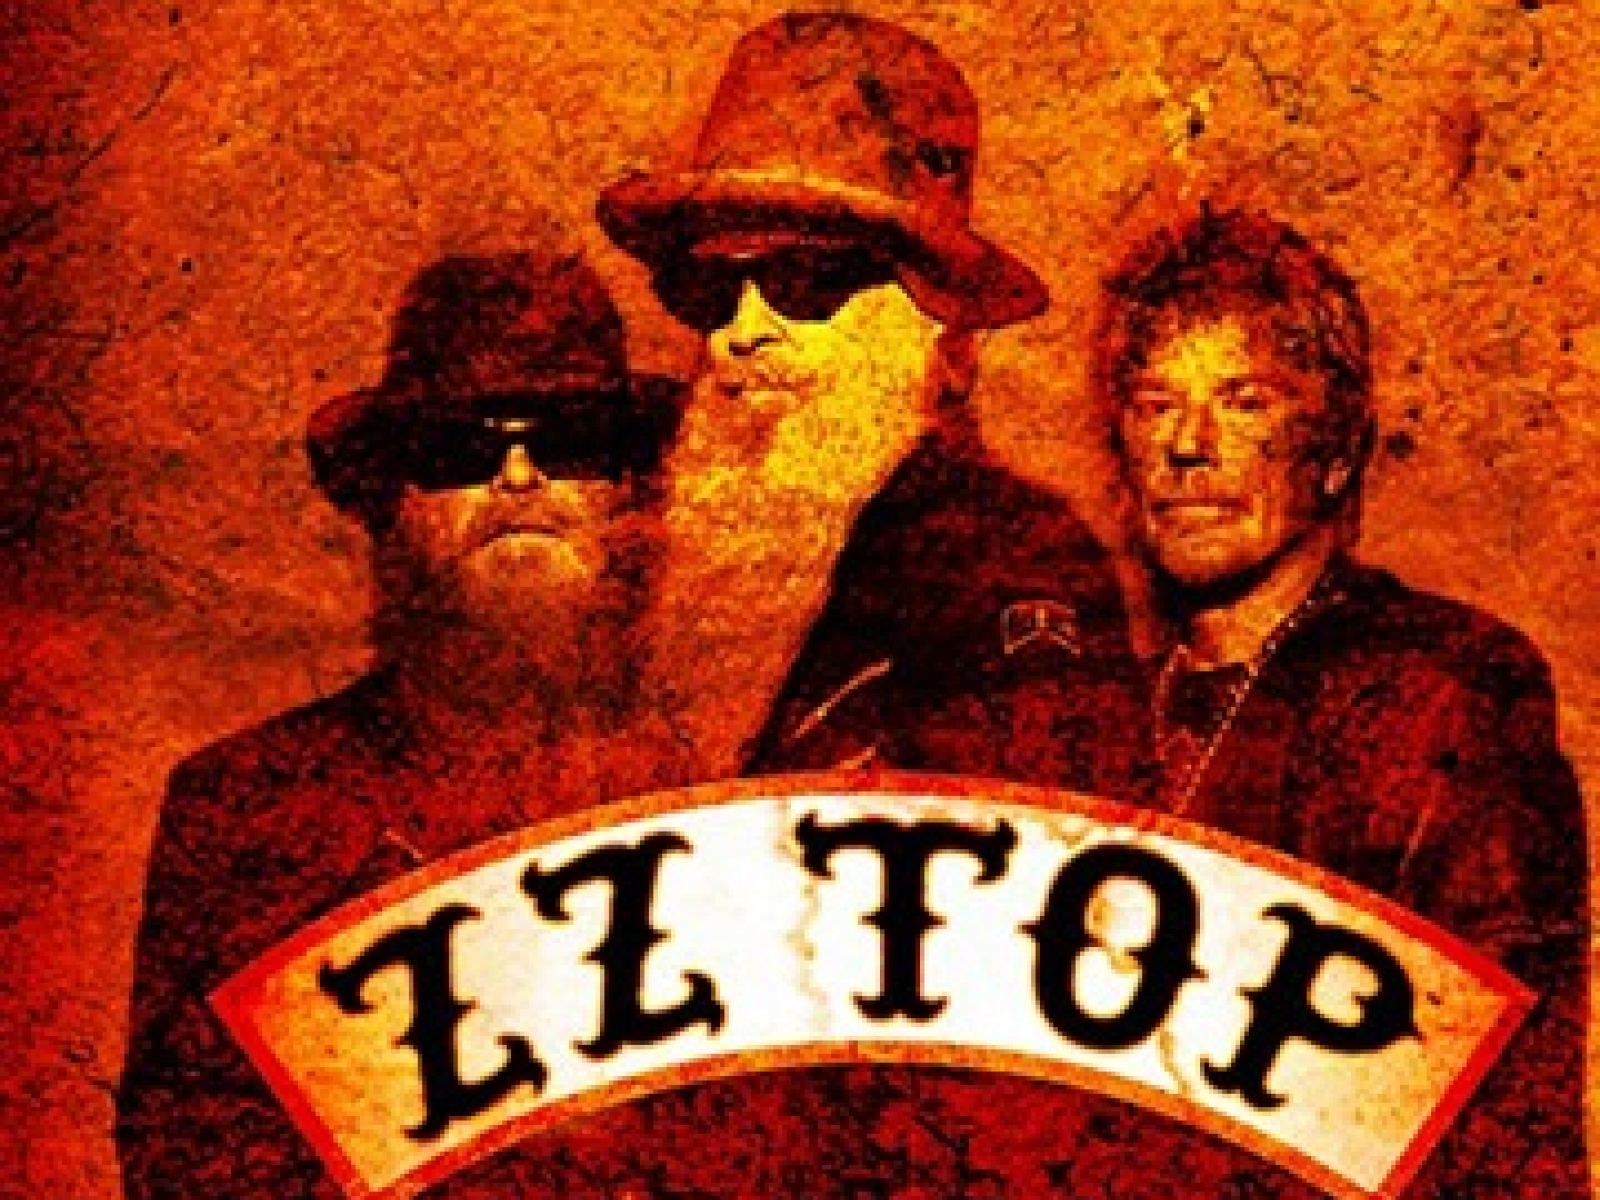 Main image for event titled ZZ TOP: THAT LITTLE OL' BAND FROM TEXAS Q&As